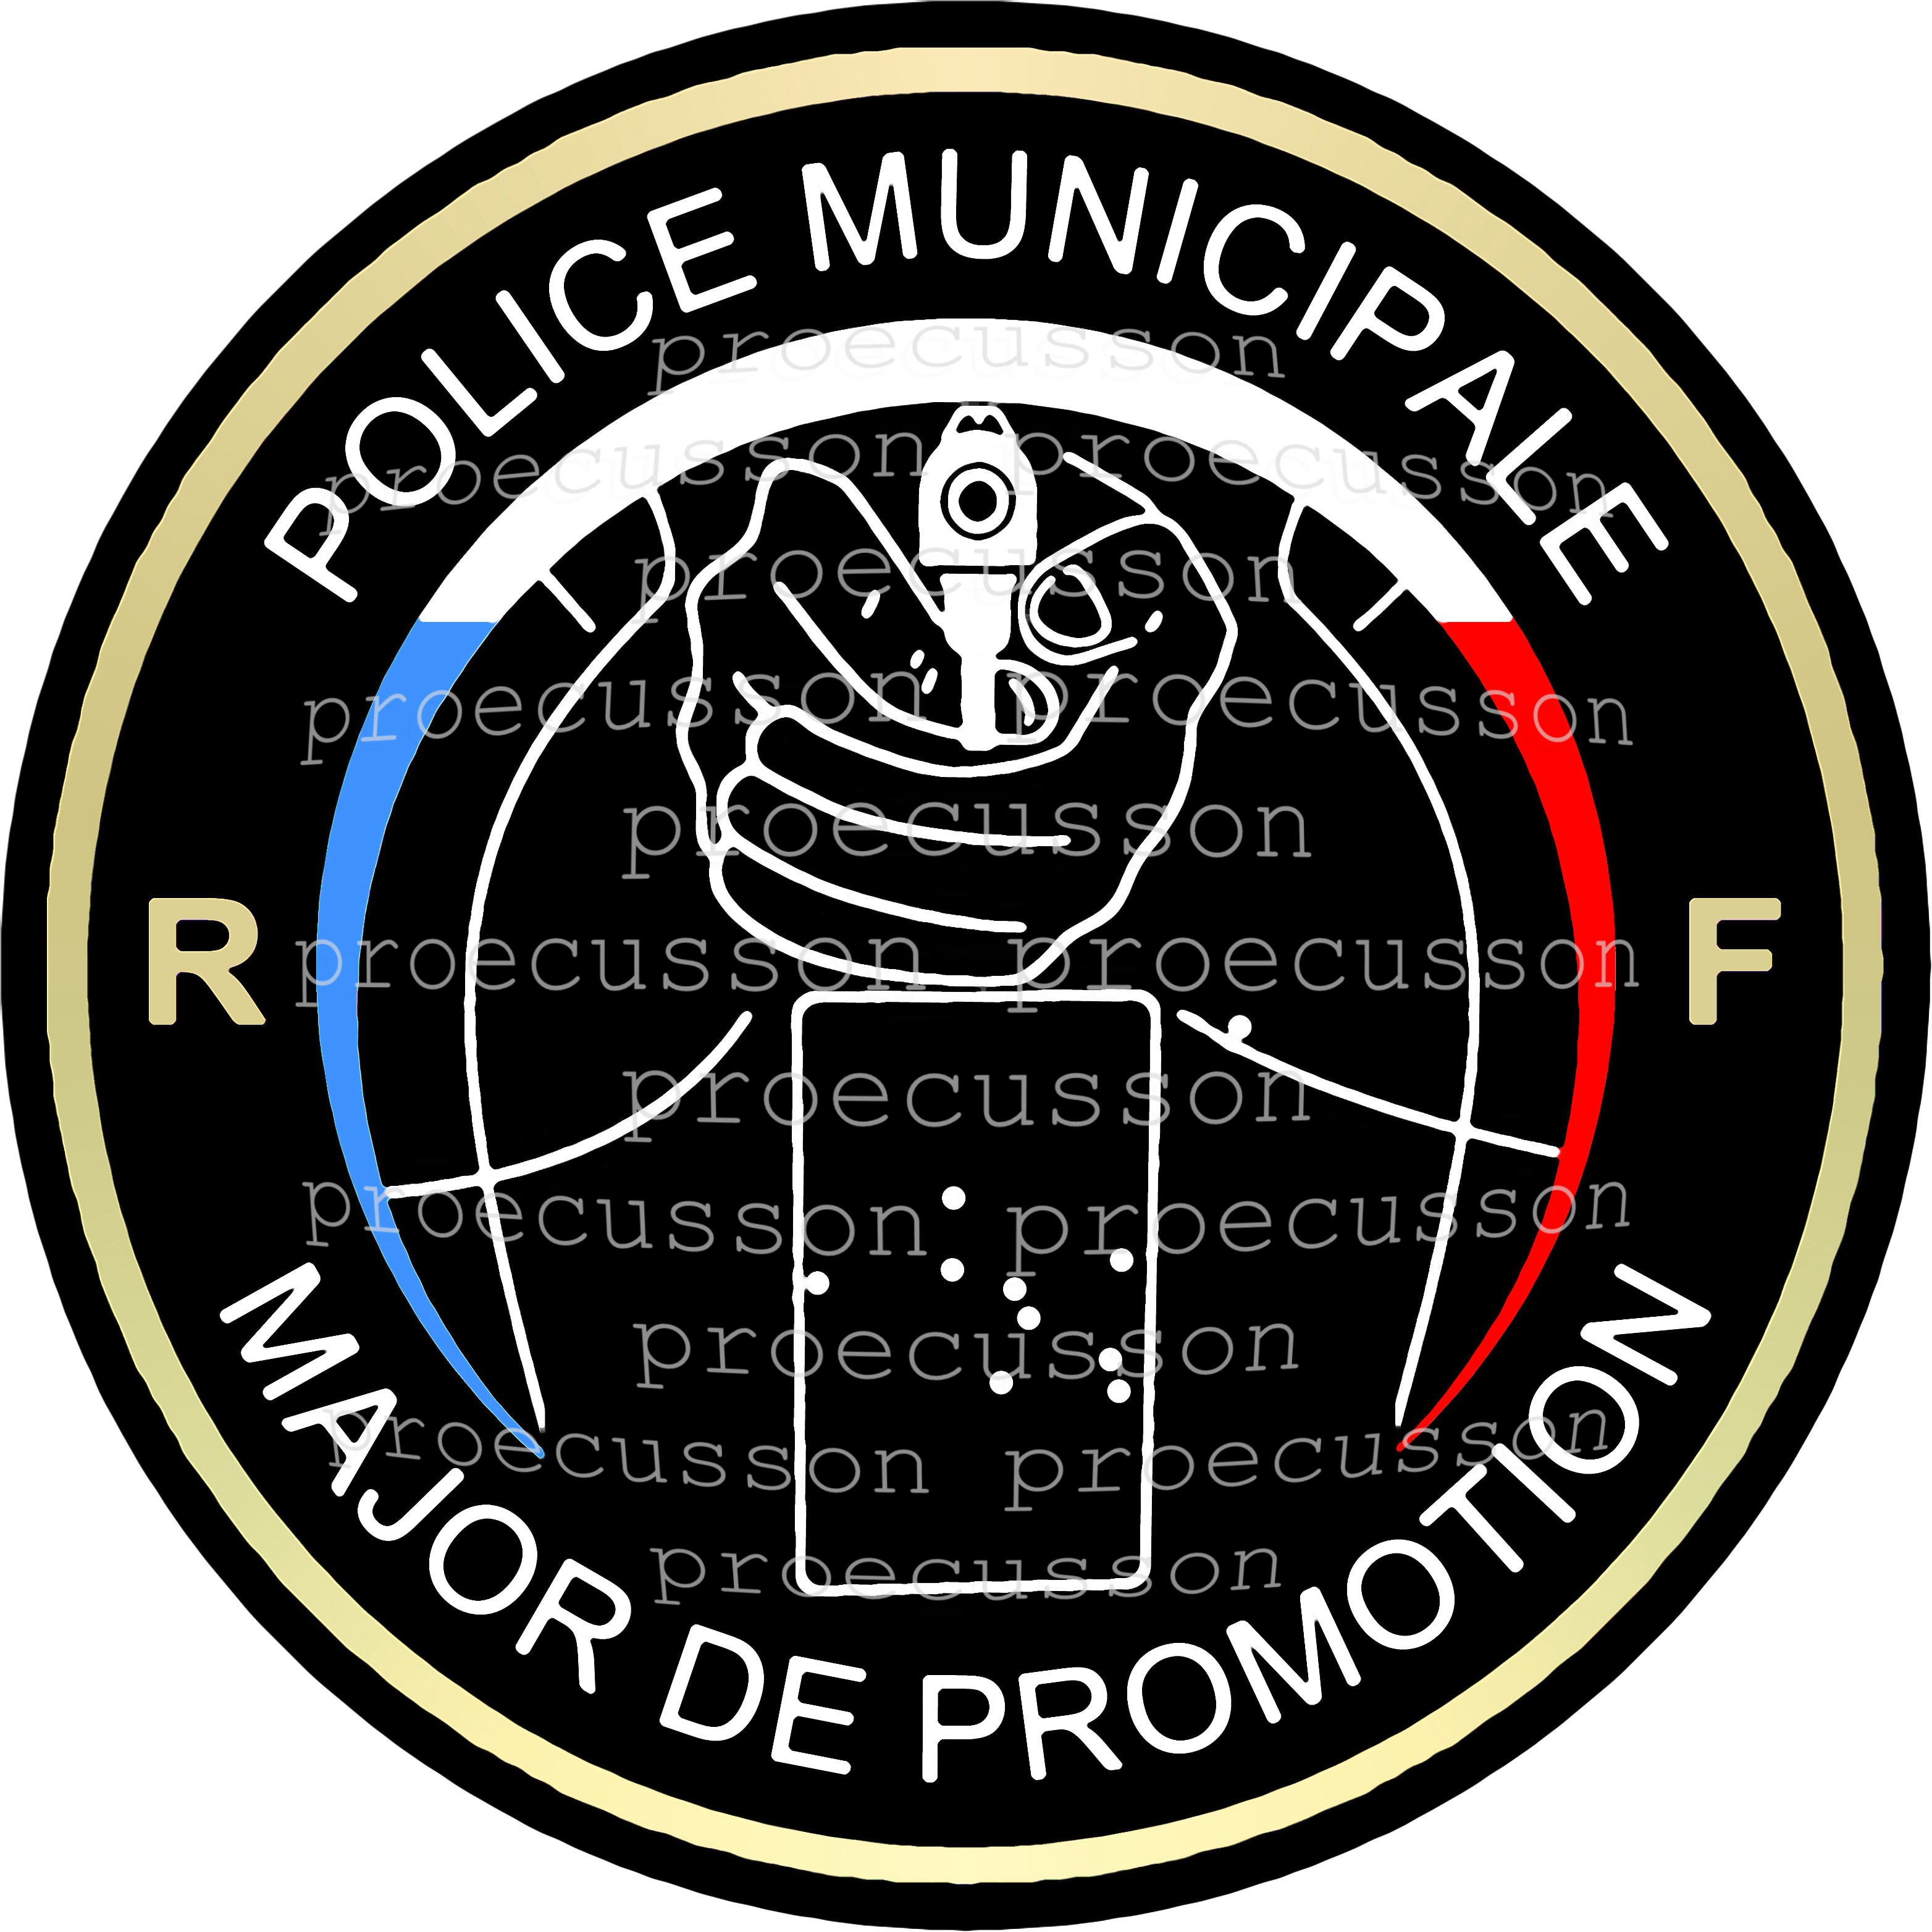 POLICE MUNICIPALE MAJOR DE PROMOTION